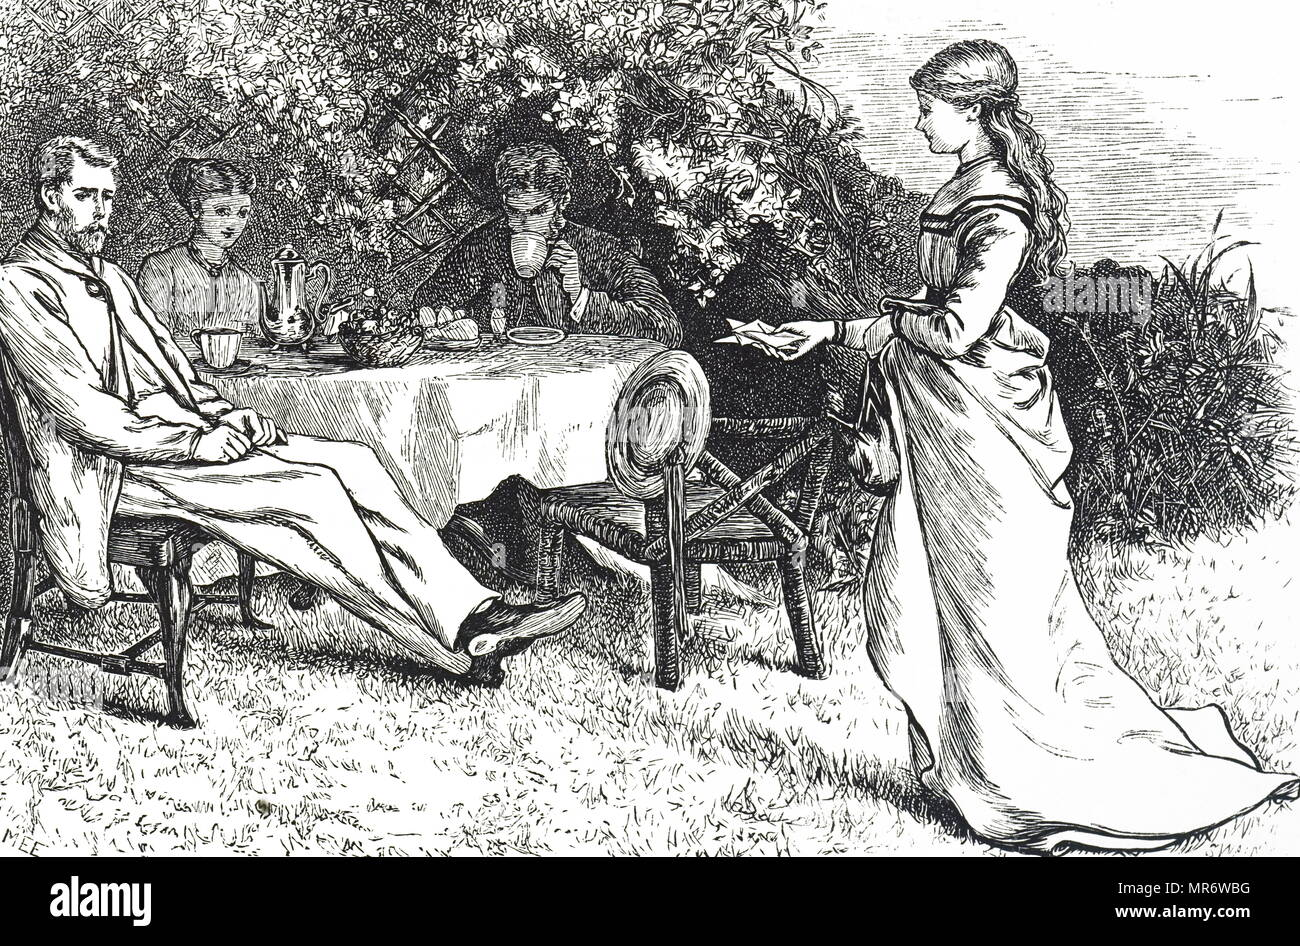 Illustration depicting a family taking breakfast in the garden. Illustrated by Mary Ellen Edwards (1838-1934) an English artist and prolific illustrator of children's books. Dated 19th century - Stock Image